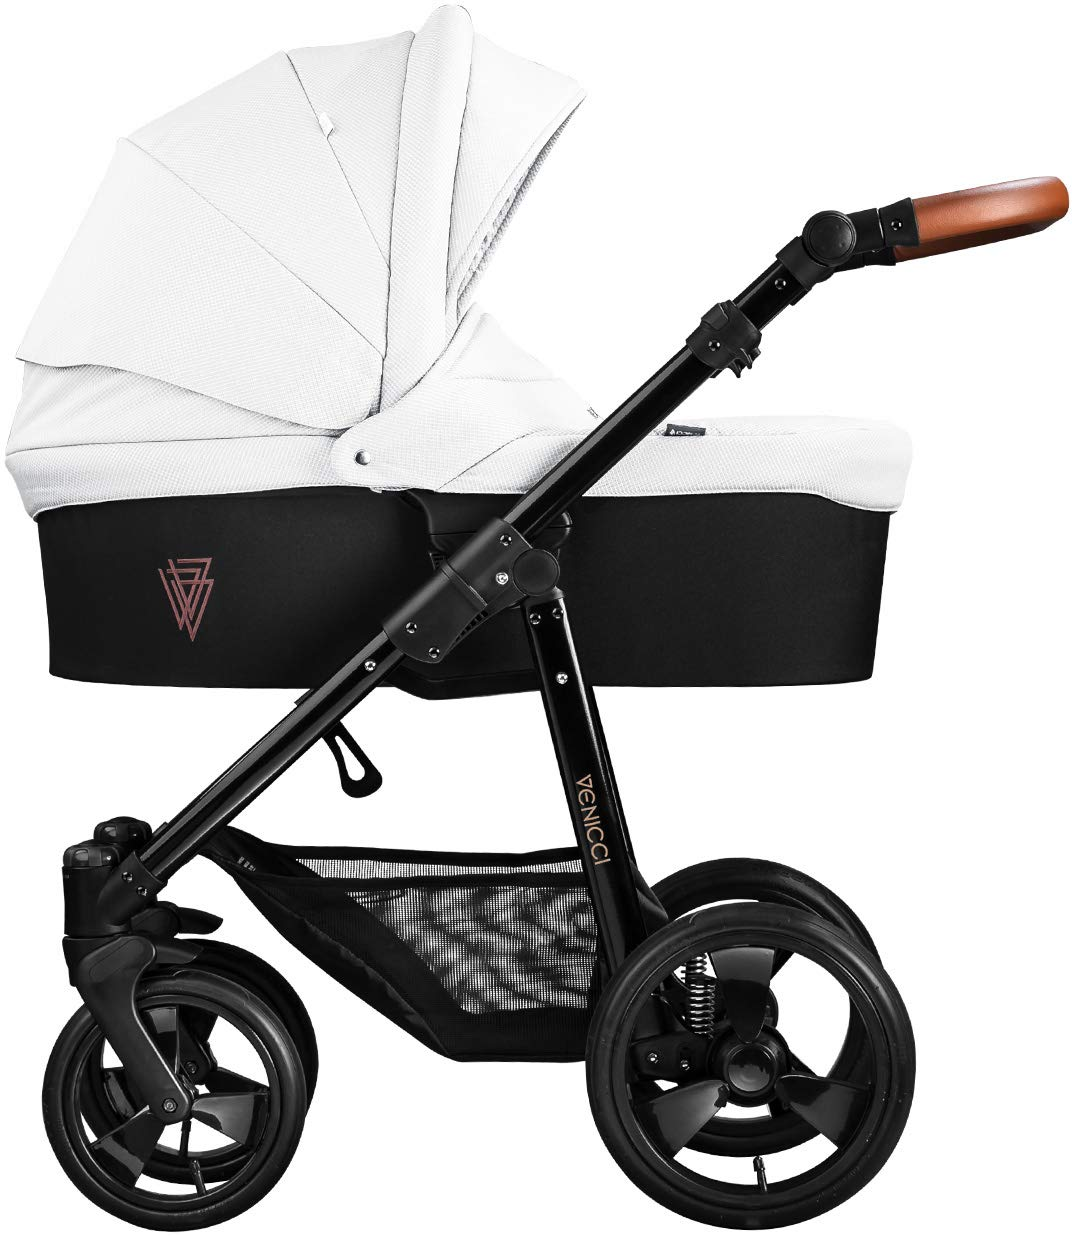 Venicci Gusto 2-in-1 - Ecru Travel System Venicci Also includes: Changing bag, Apron, Rain cover, Mosquito Net, Cup holder Carrycot: L 102cm W 61cm H 112 cm Age suitability: From birth to 6 months Seat unit: L 95cm W 61cm H 112cm Age suitability: From 7 to 36 months 1